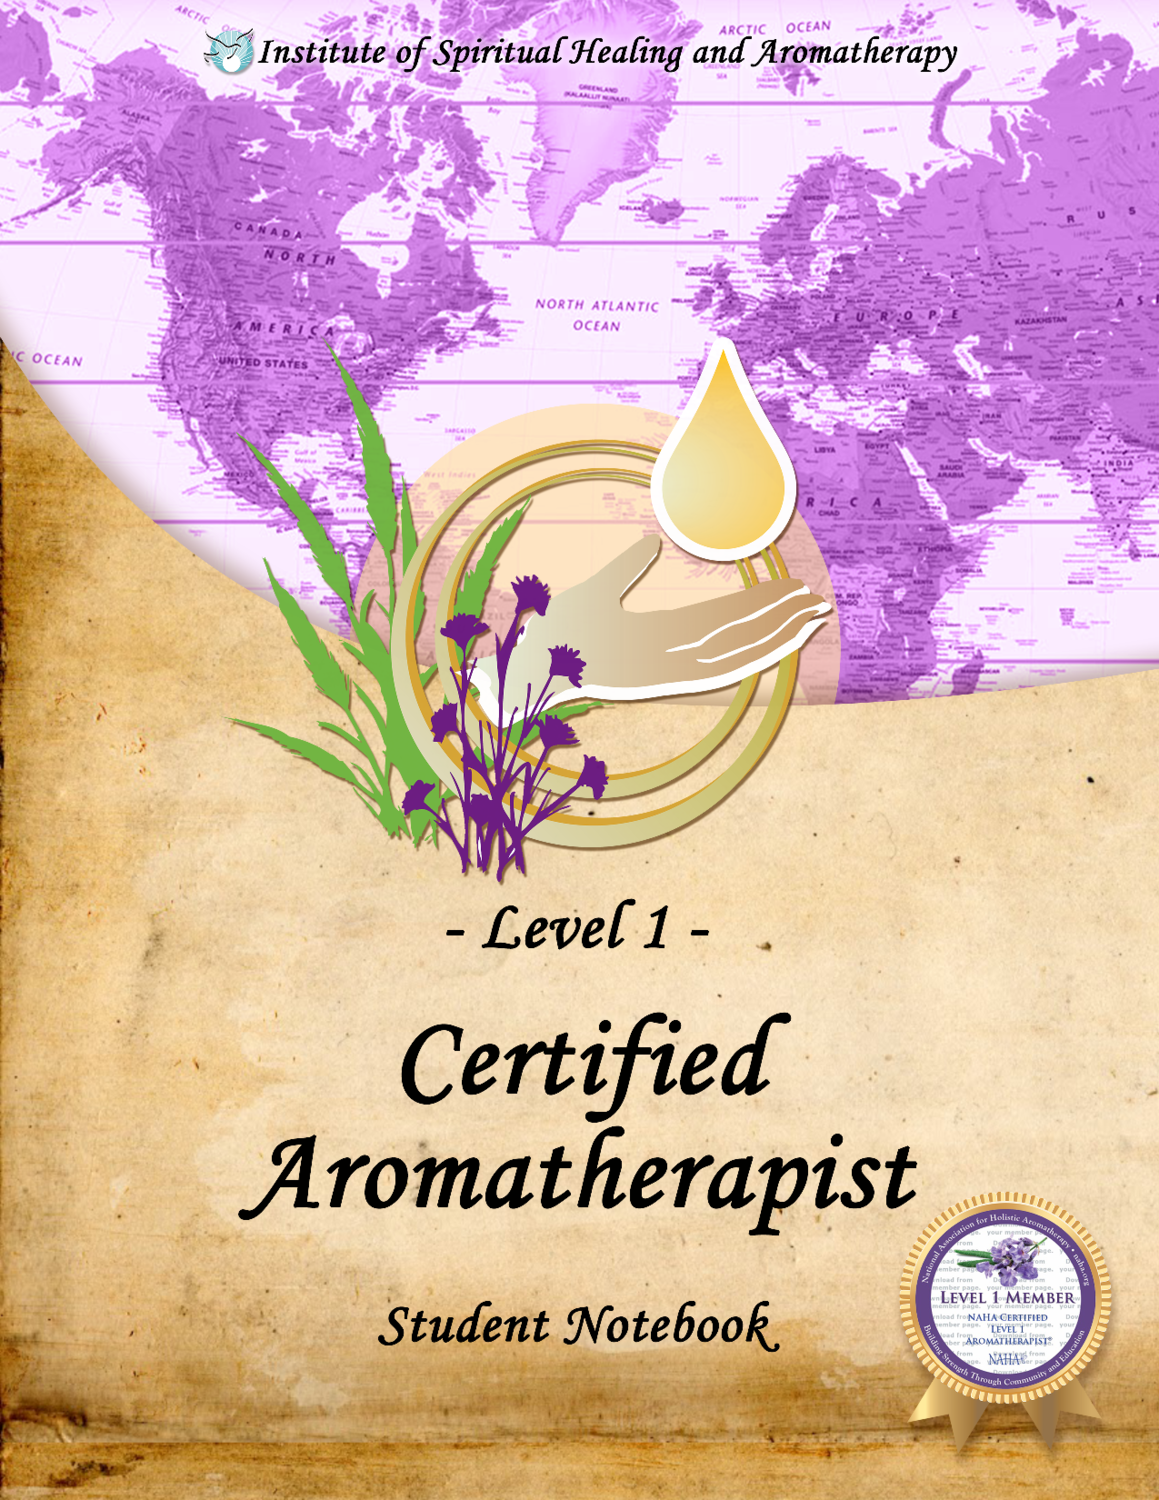 Certified Aromatherapist - Level 1 - Phoenix, AZ -July 16-18, 2021 ZOOM ONLY